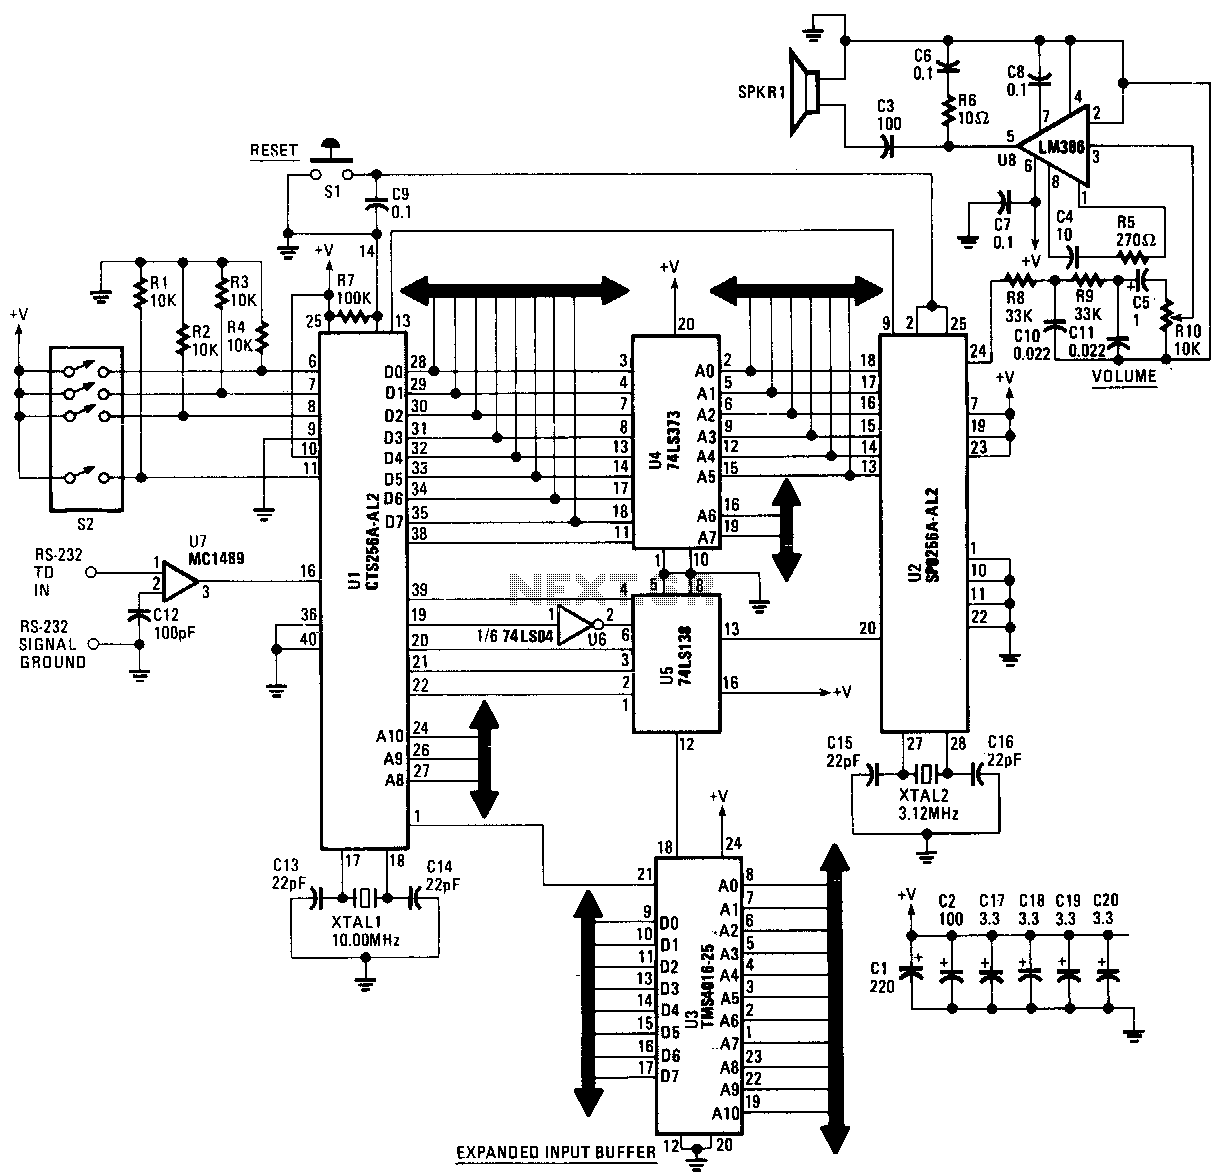 Popular Circuits Page 77 Lm339 Time Delay Generator Circuit Diagram And Datasheet Computer Speech Synthesizer